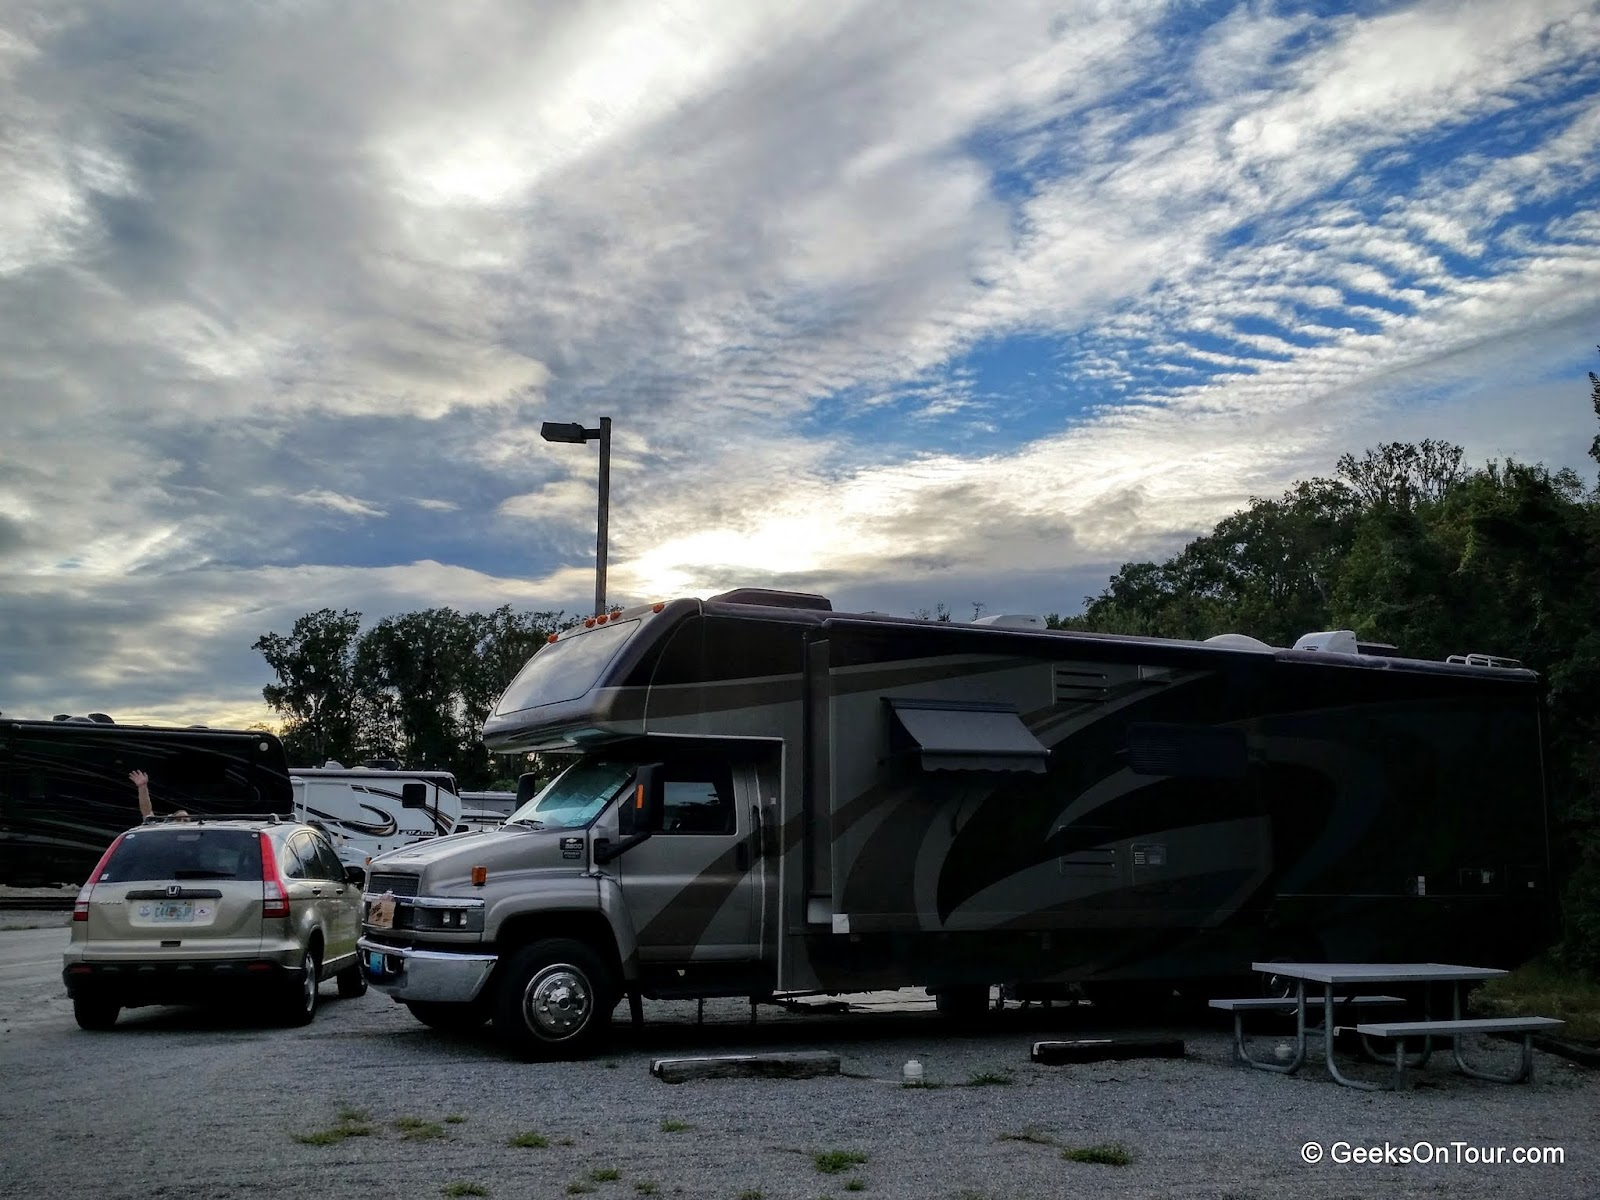 Geeks On Tour Blog 09 01 2015 10 50 Amp Rv Hookup They Offer A Boat Storage Yard For Residents And It Includes 6 Full Sites We Generally Have The Place All To Ourselves